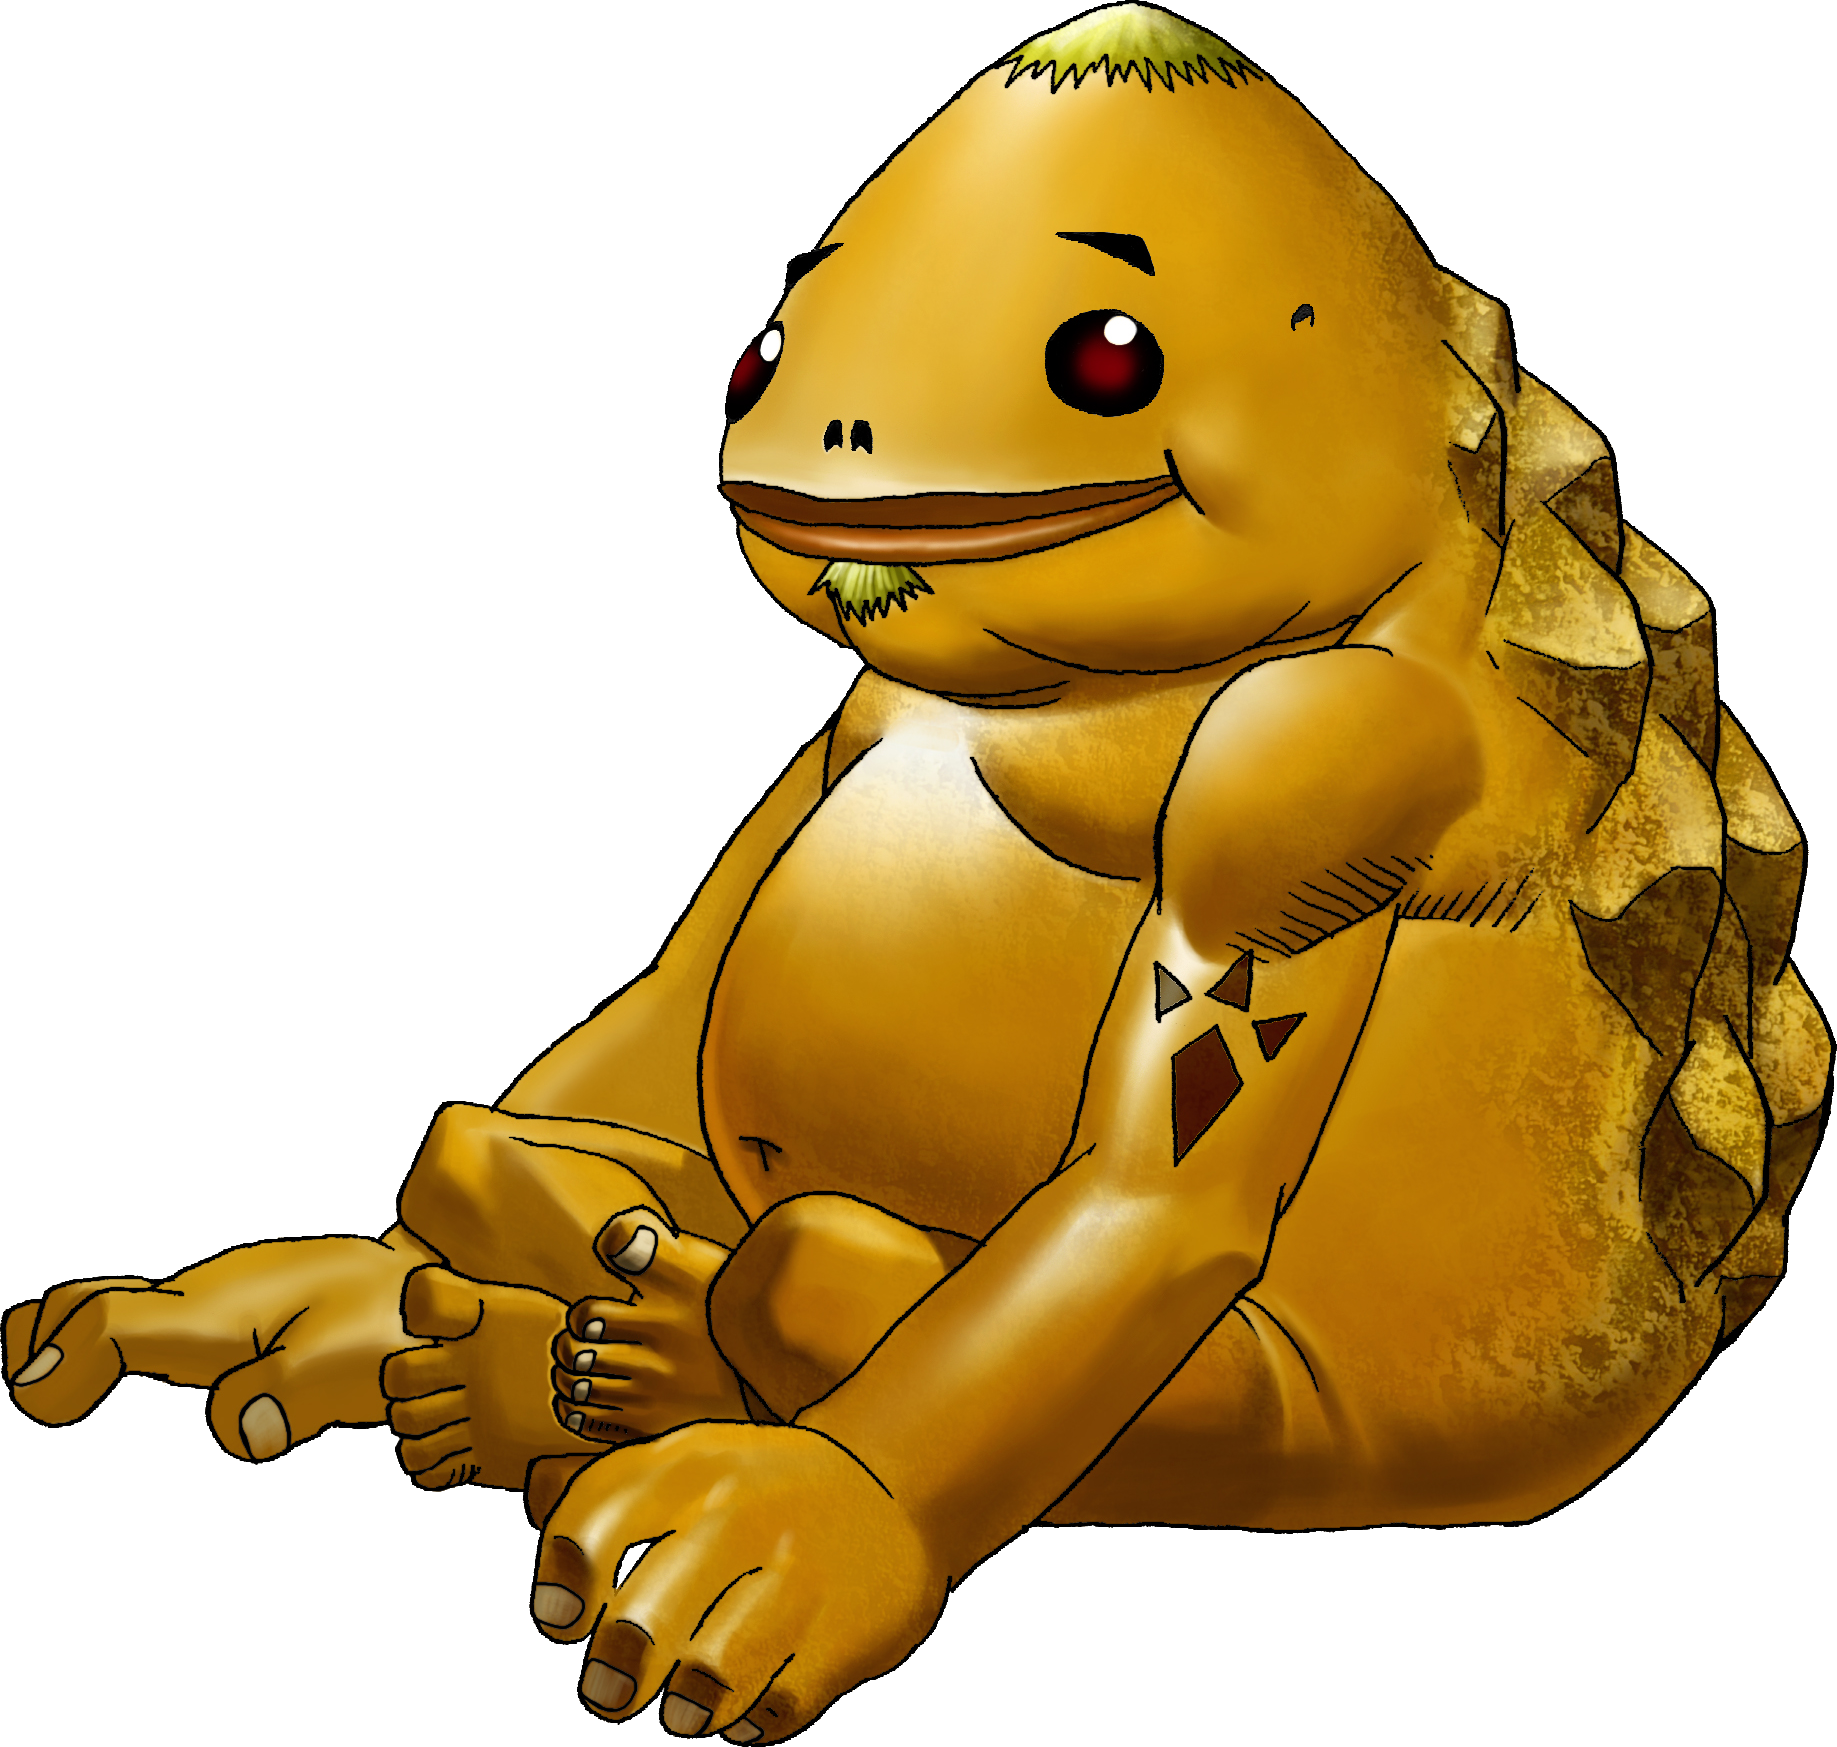 Goron Zeldapedia Fandom Powered By Wikia